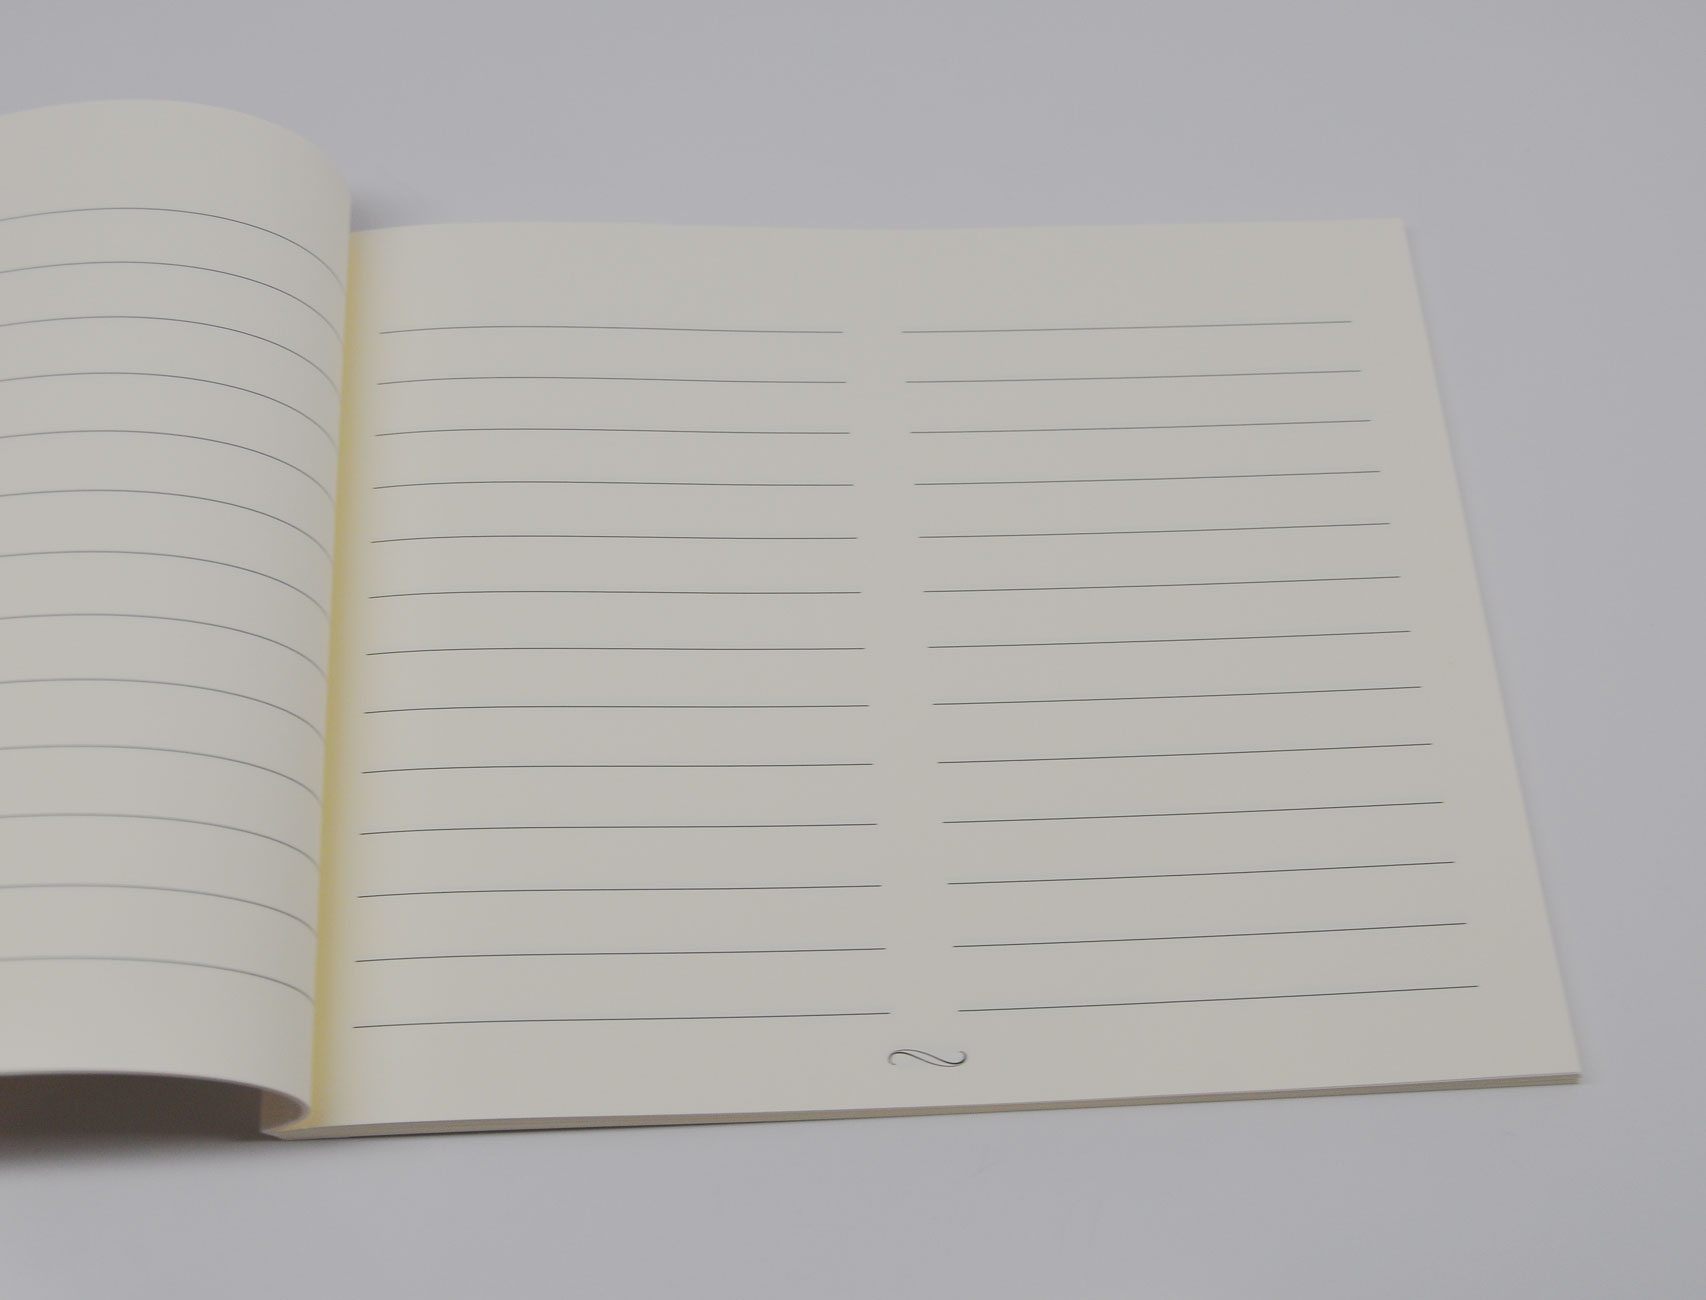 custom books Wedding Guest Book Refill Pages lined page guest book wedding guest book refill pages